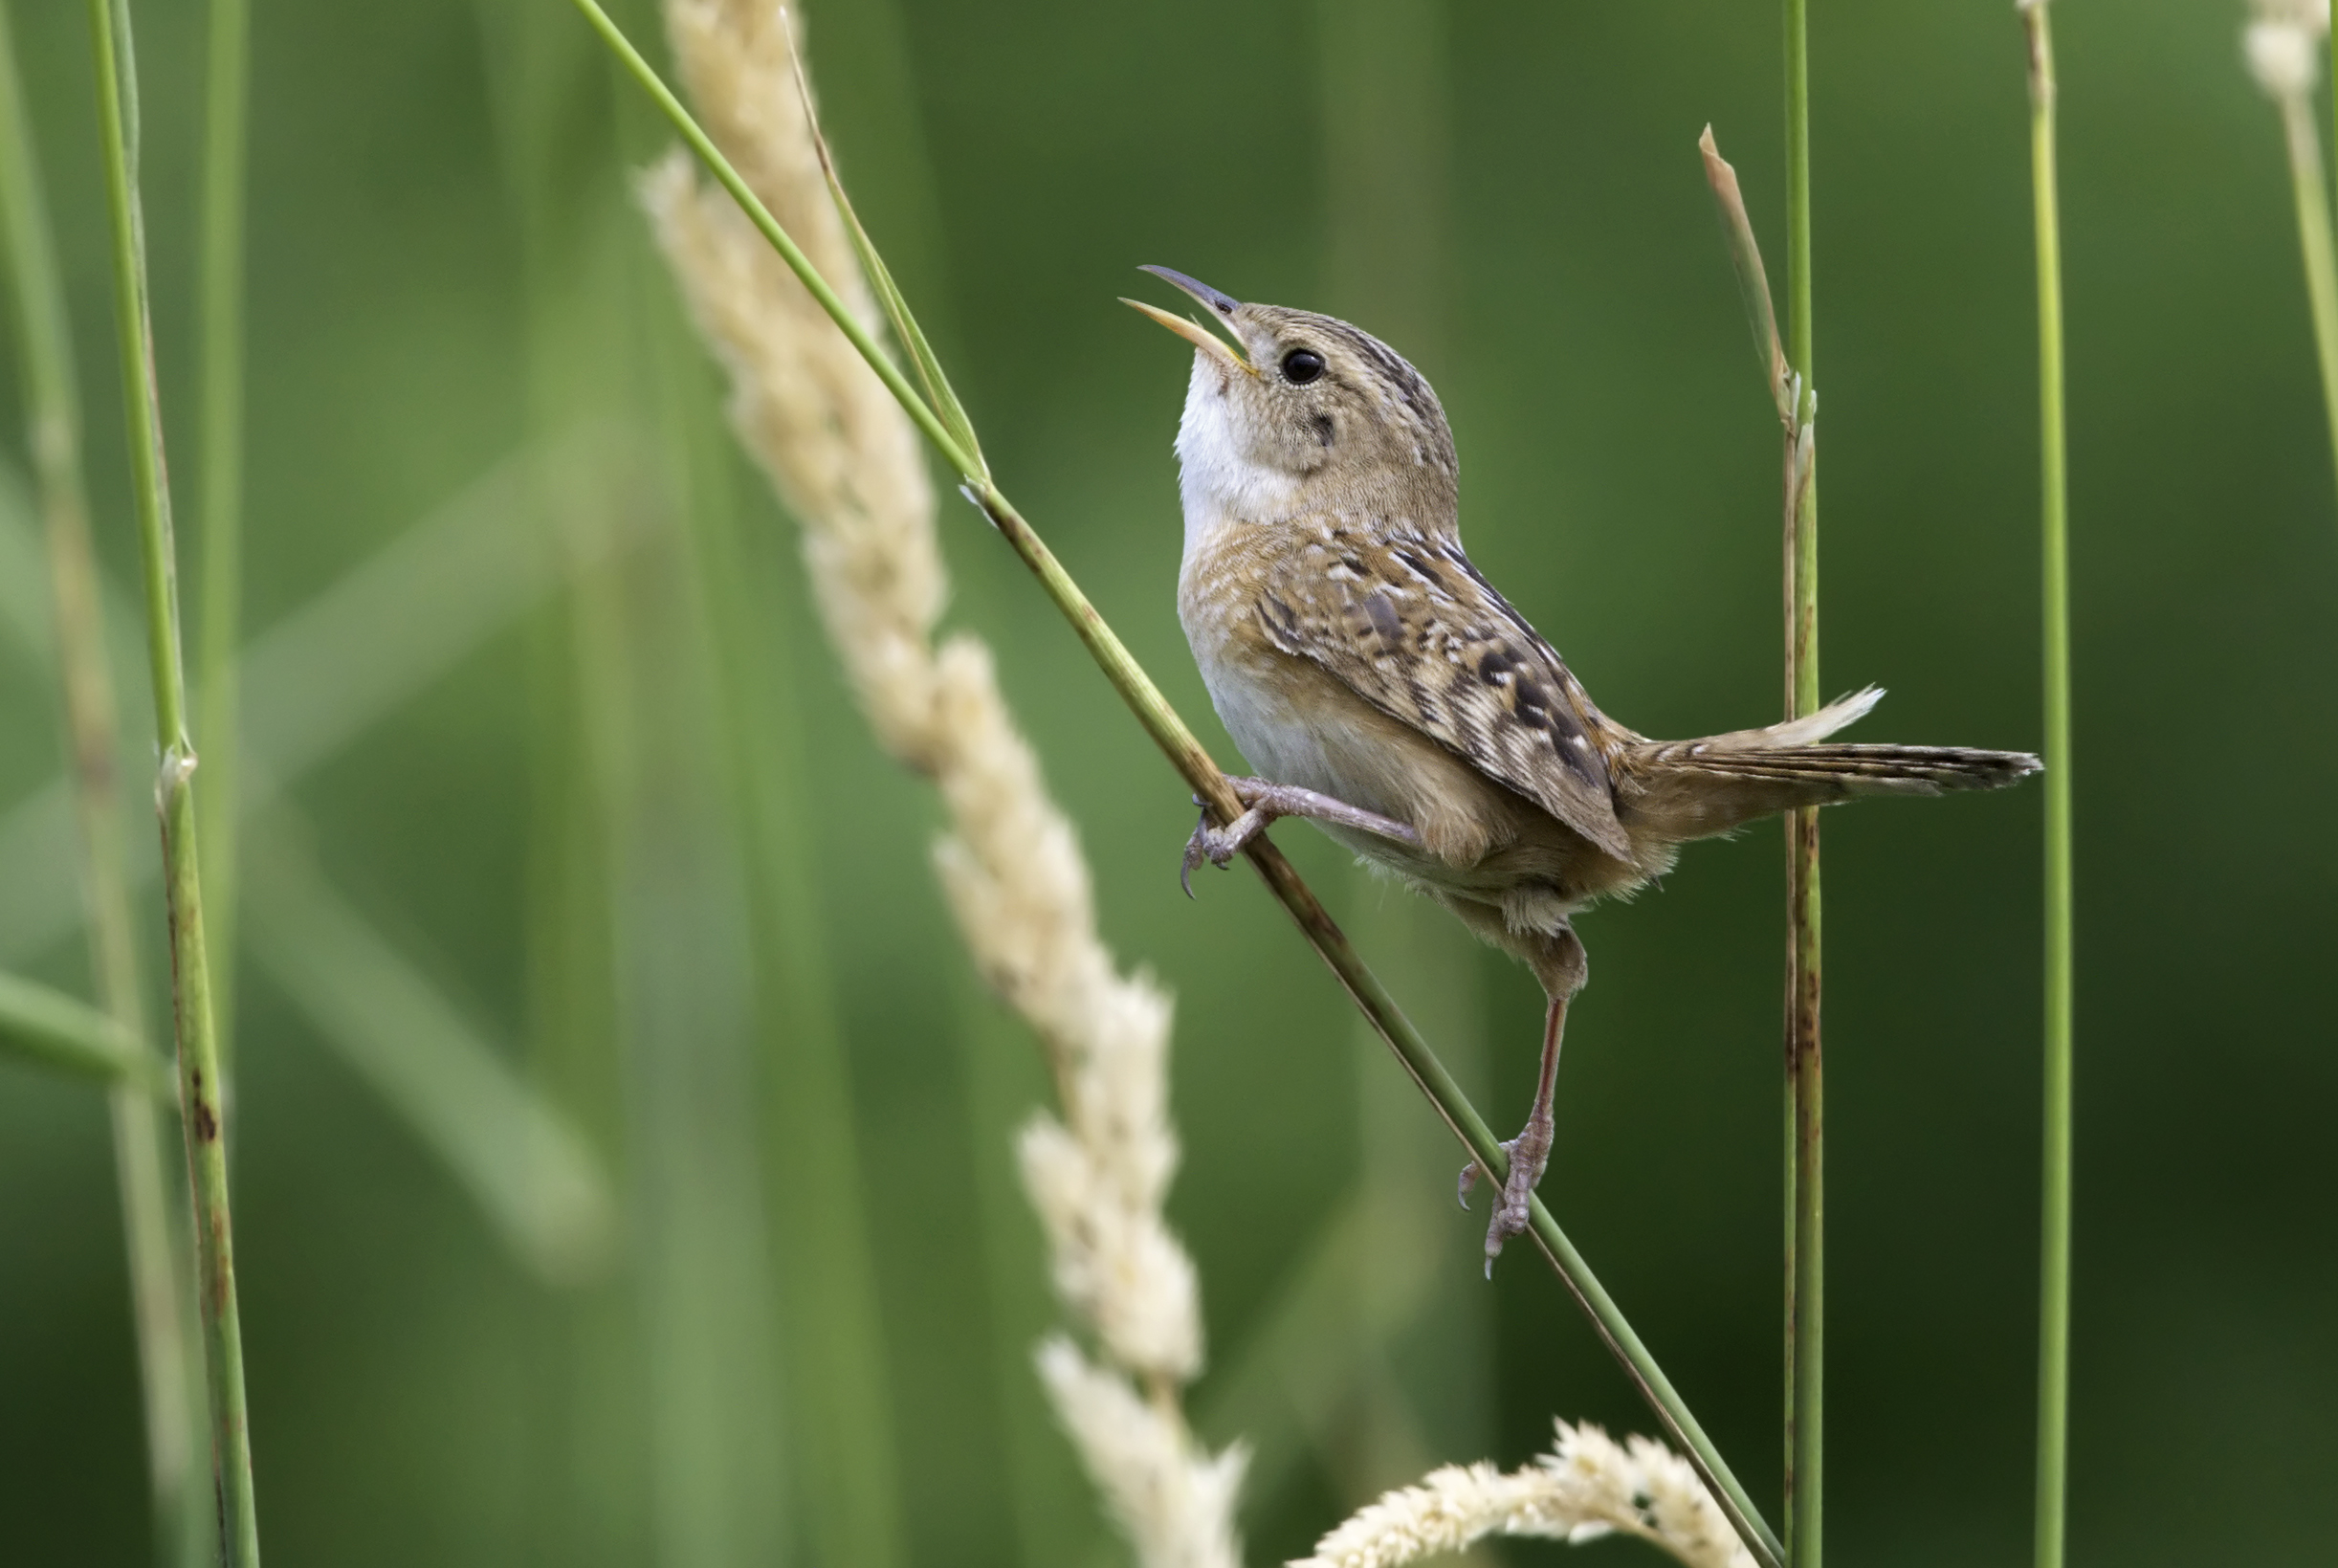 """- Sedge Wren (Cistothorus platensis)Sedge Wrens live in sedges in wetlands such as marshes. Their diet includes insects and spiders. Sedge Wrens grow to be 3.9-4.7 in. in length. Their call sounds like two stones being hit together, like a """"chip."""" They are protected on the US Migratory Bird list.Photo Credits: Kelly Colgan Azar"""